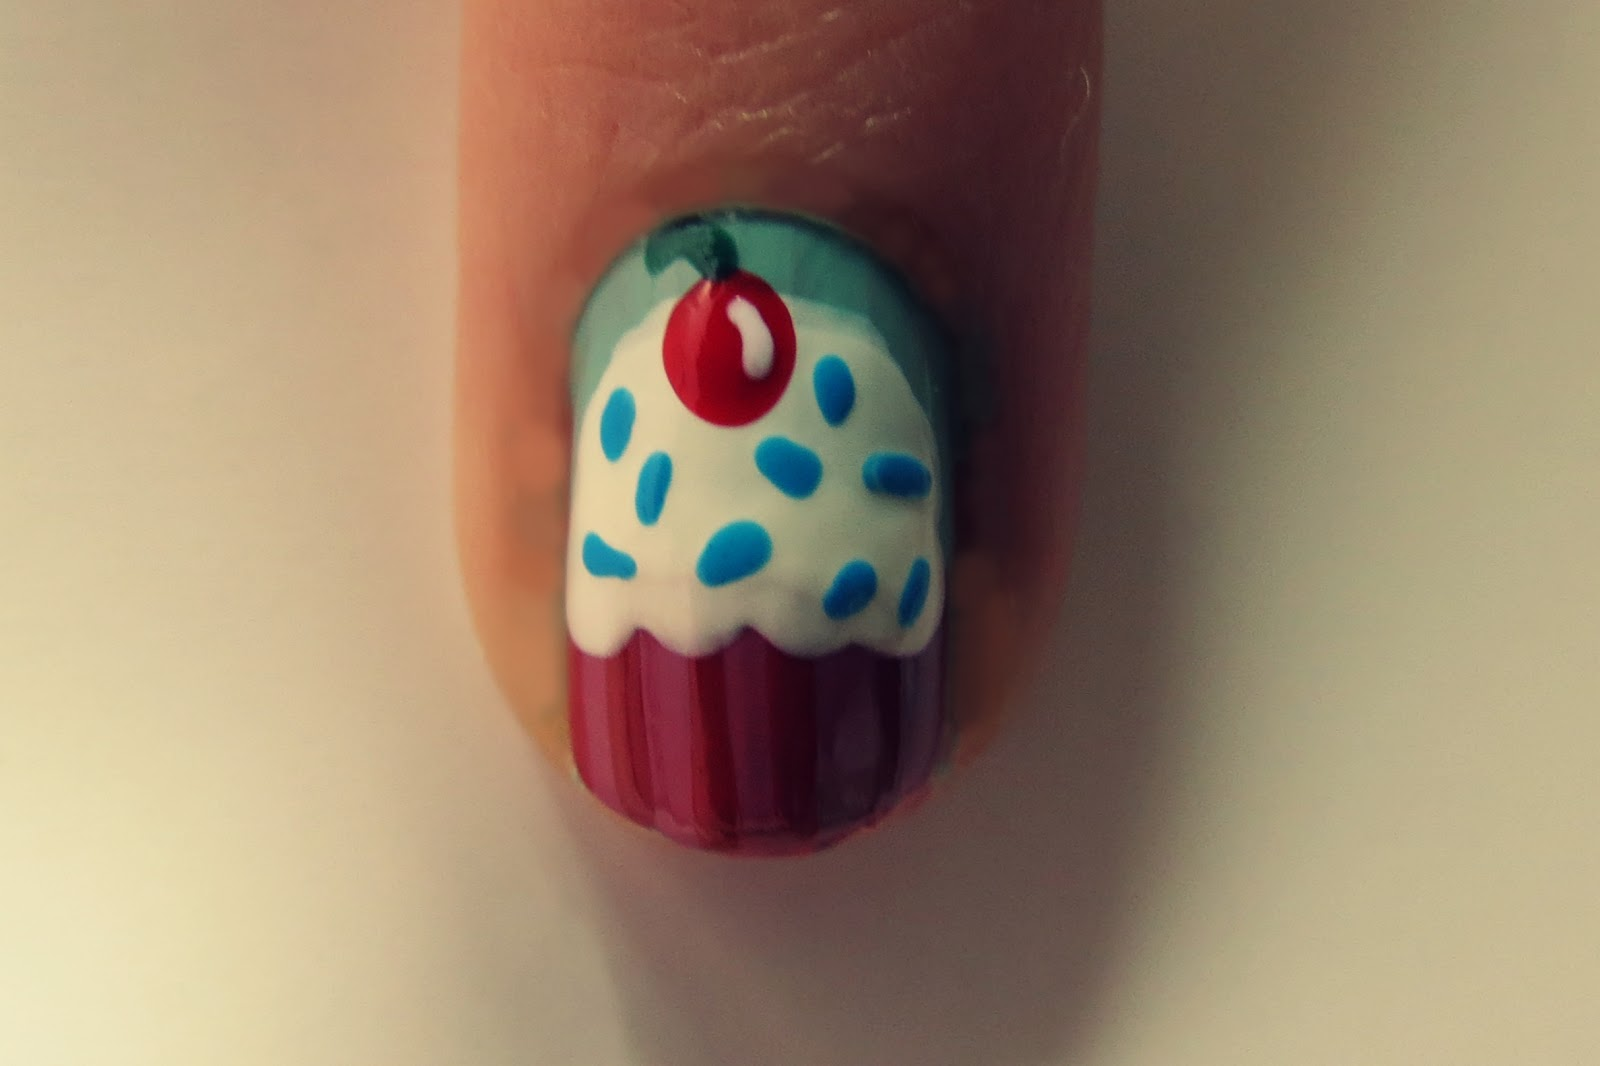 30 Awesome Cupcake Nail Art Designs 2015/16 30 Awesome Cupcake Nail Art Designs 2015/16 cupcake nail art design 15